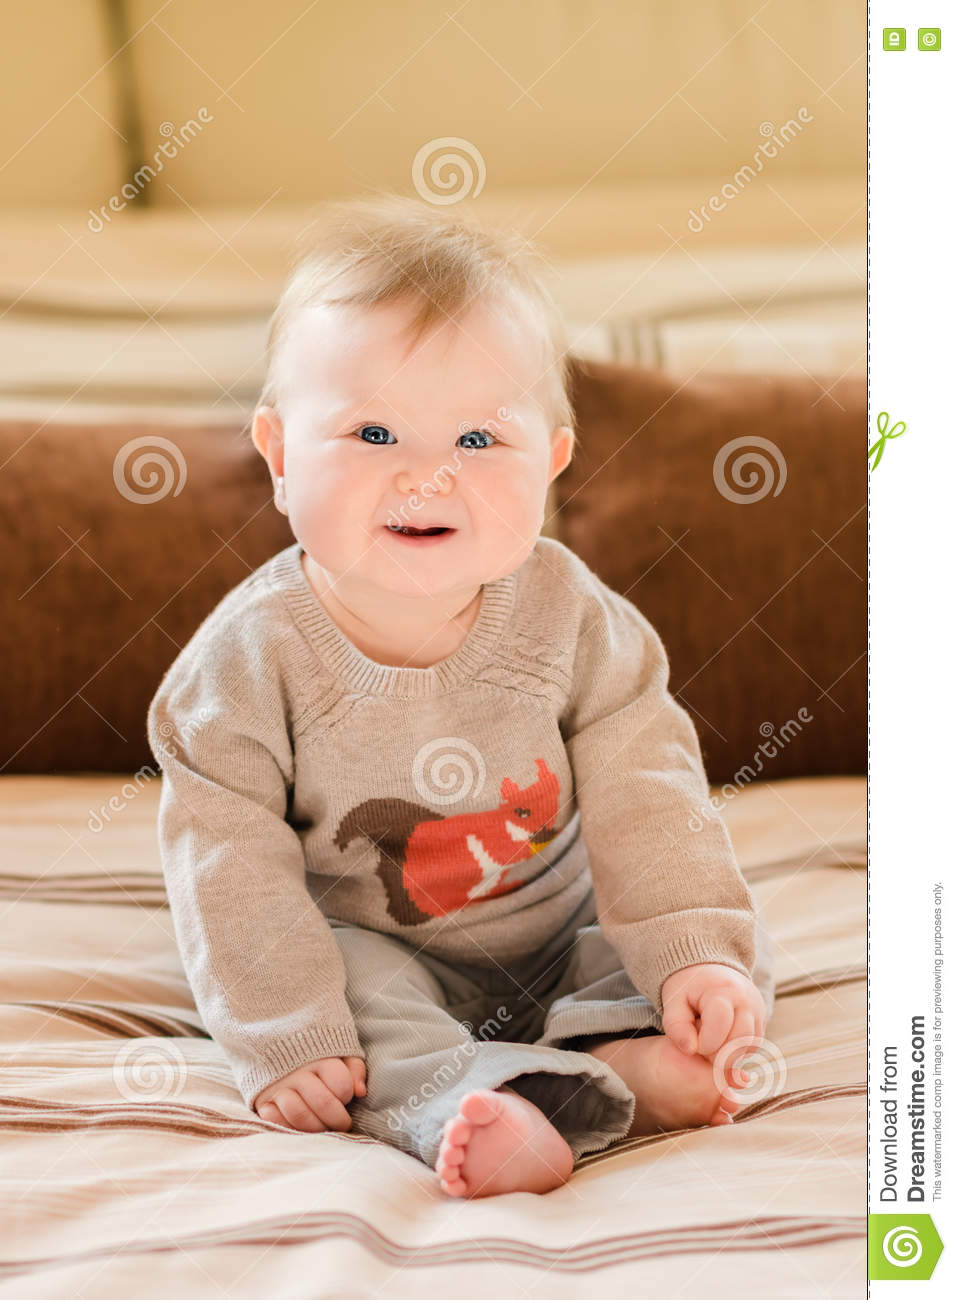 Happy childhood. Laughing little child with blond hair and blue eyes wearing knitted sweater sitting on sofa and touching her leg